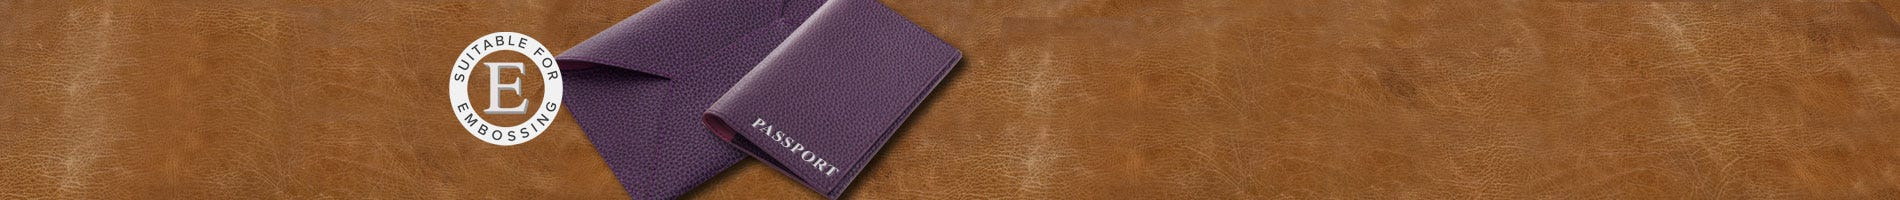 leather passport and document holder